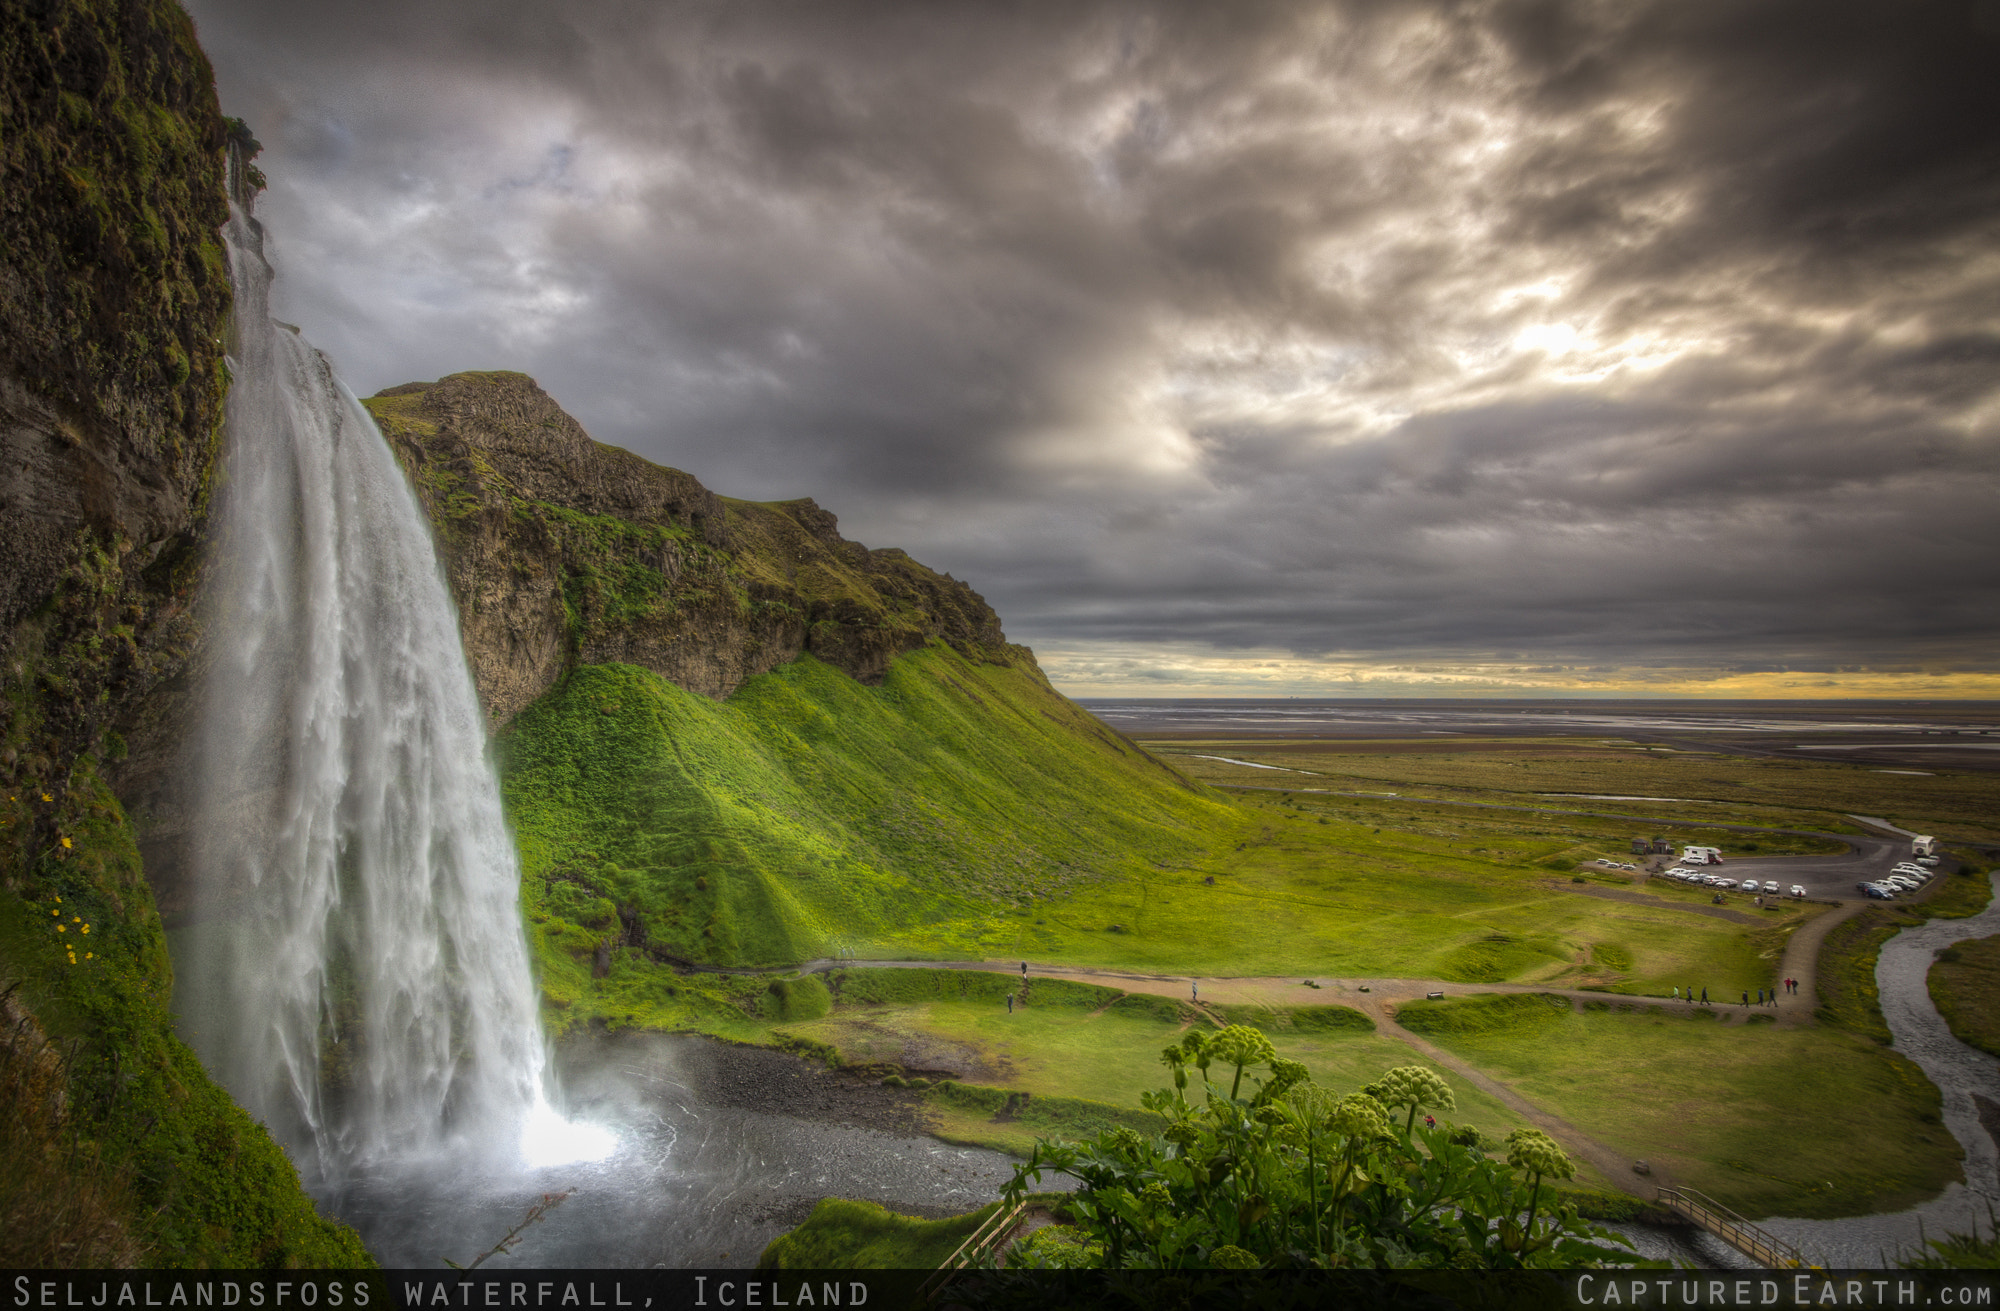 Photograph Seljalandsfoss Waterfall by Tom Wrench on 500px